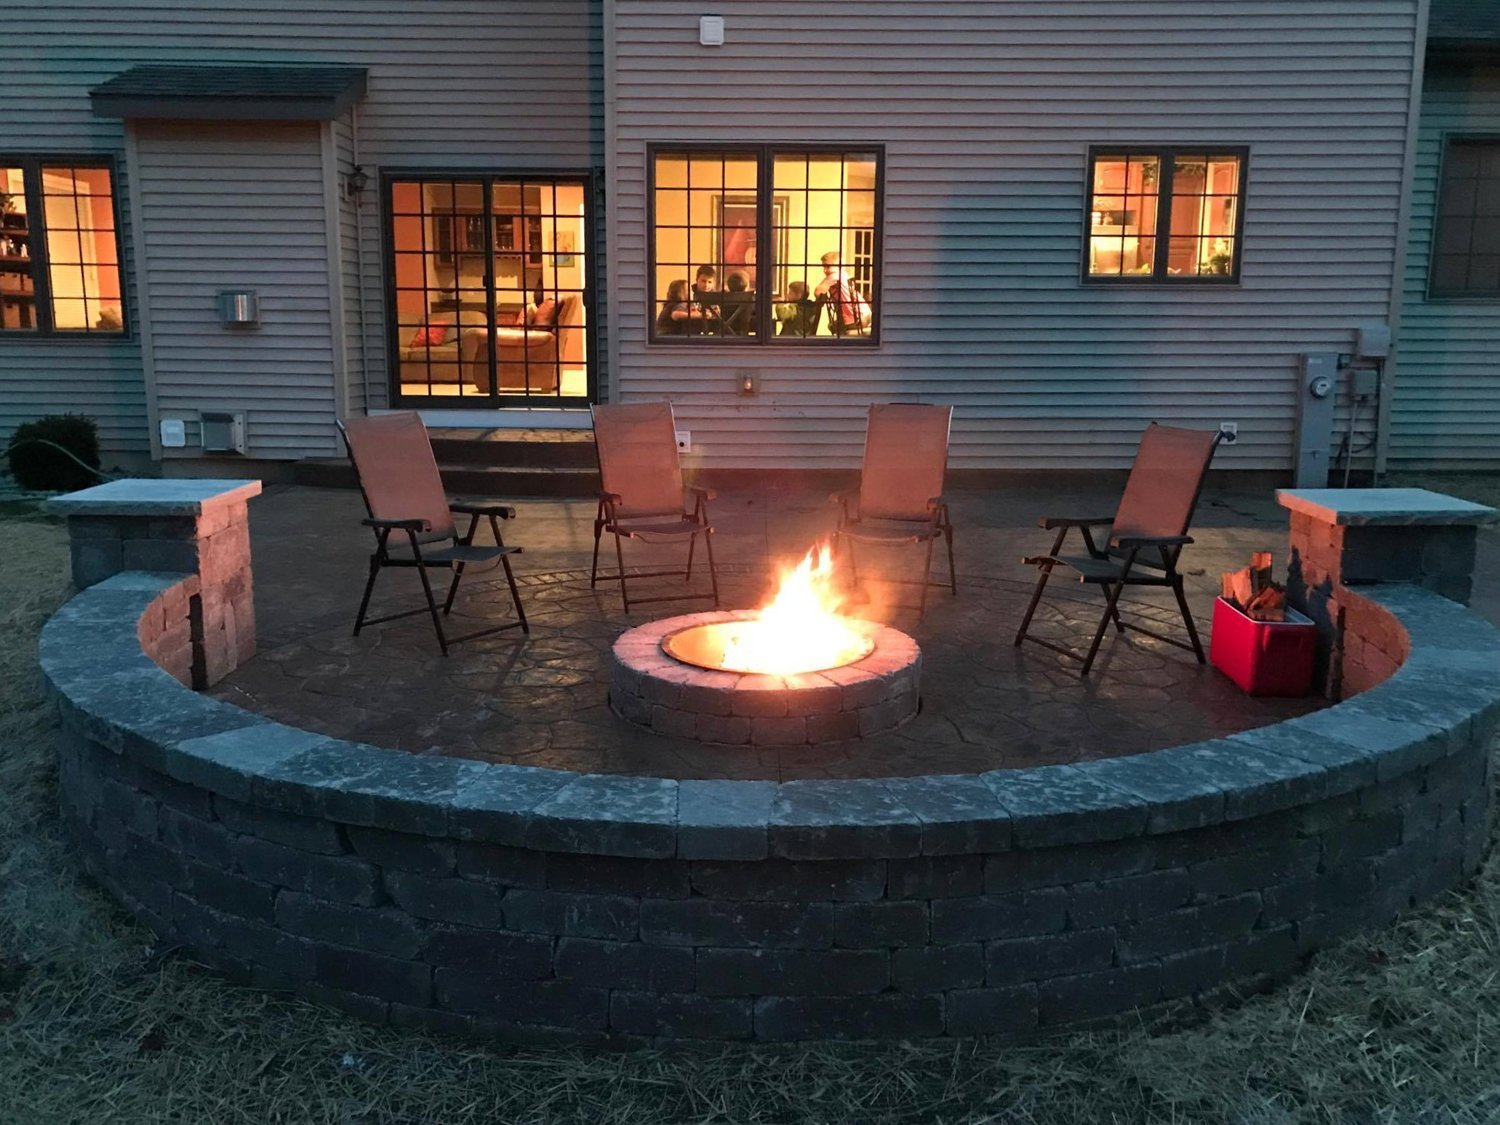 Stamped Concrete Patio Design Ideas You Ll Love For Years To Come Degnan Design Build Remodel